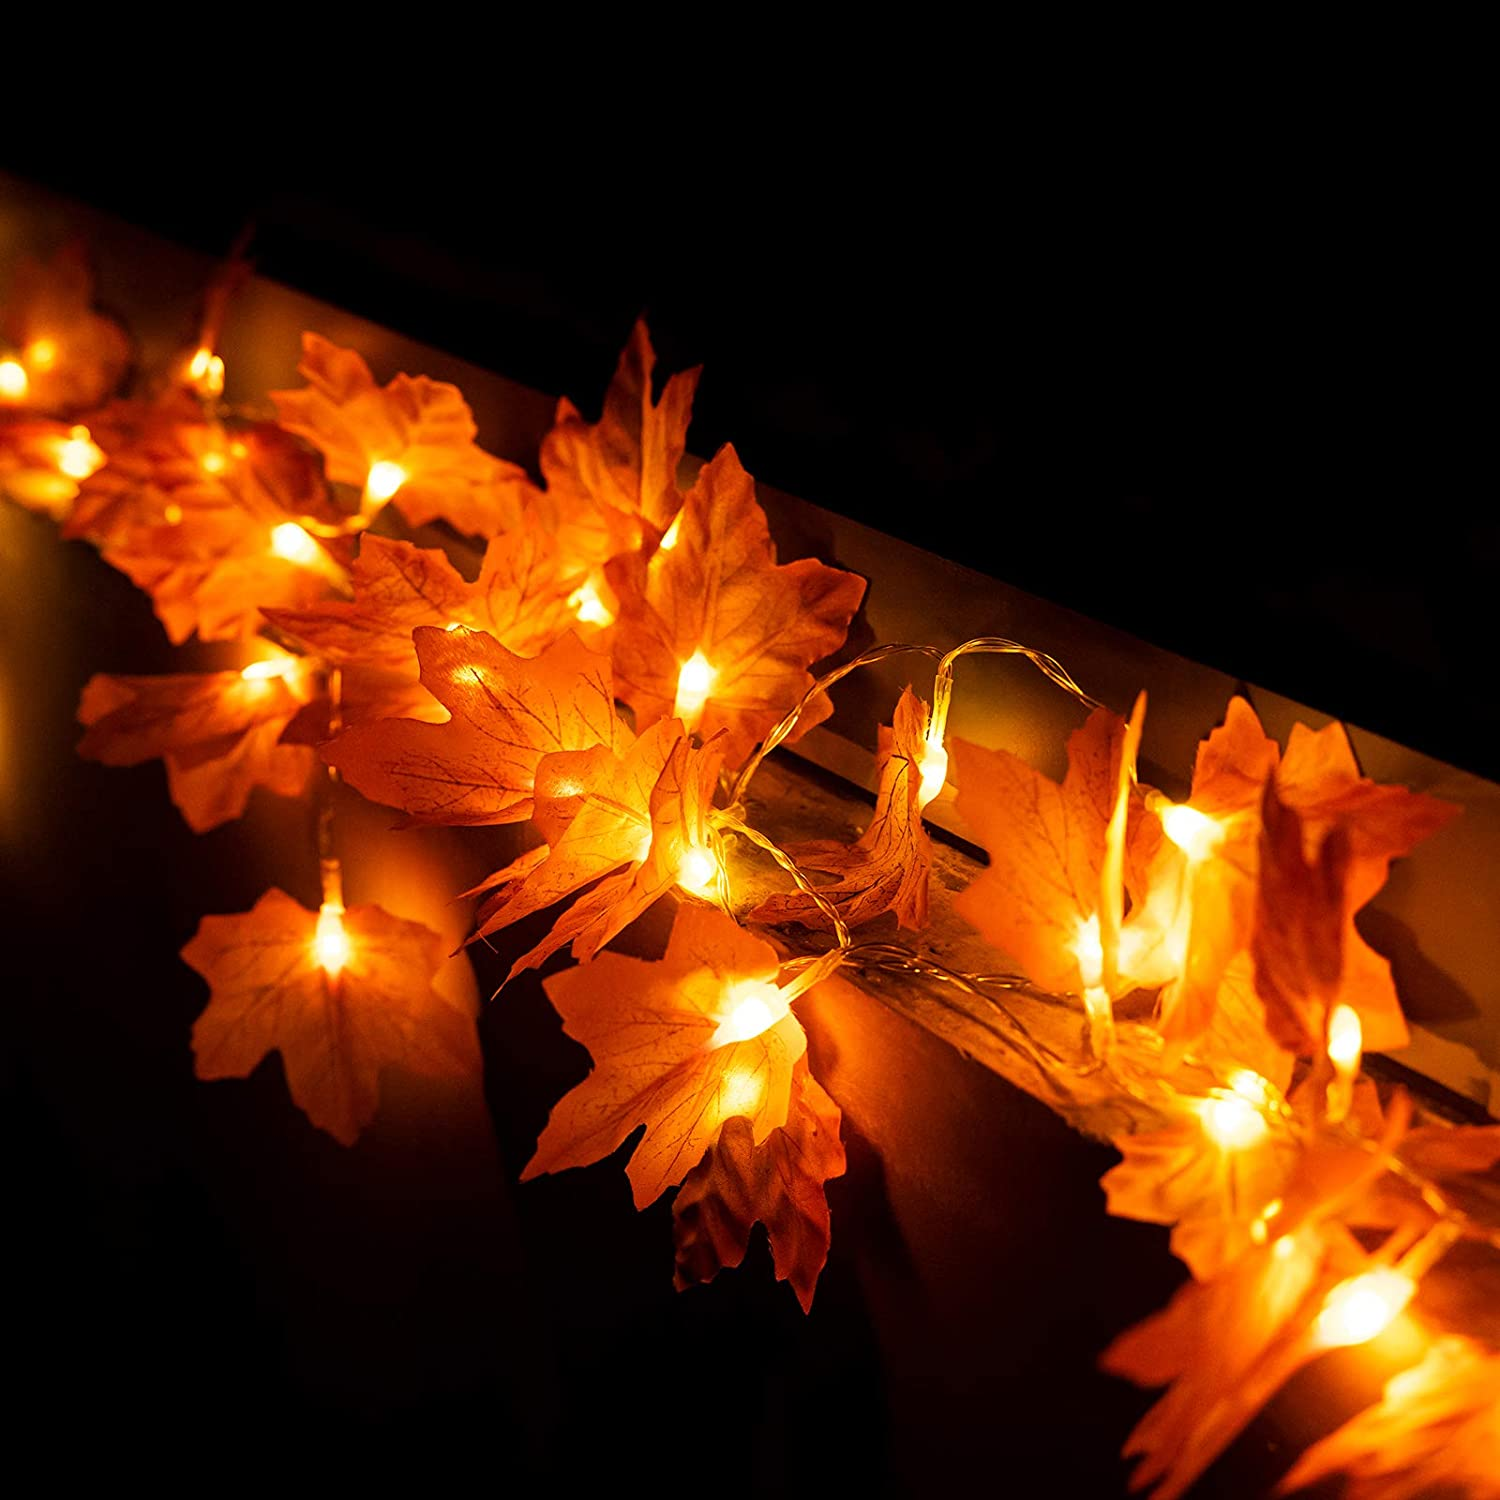 JIELIELE 2PACK Thanksgiving Maple Leaves Lights, 40 LEDs Twinkle Lights Battery Operated, Thanksgiving Lights for Thanksgiving, Home, Turkey Decorations Outdoor Indoor Fall Decor